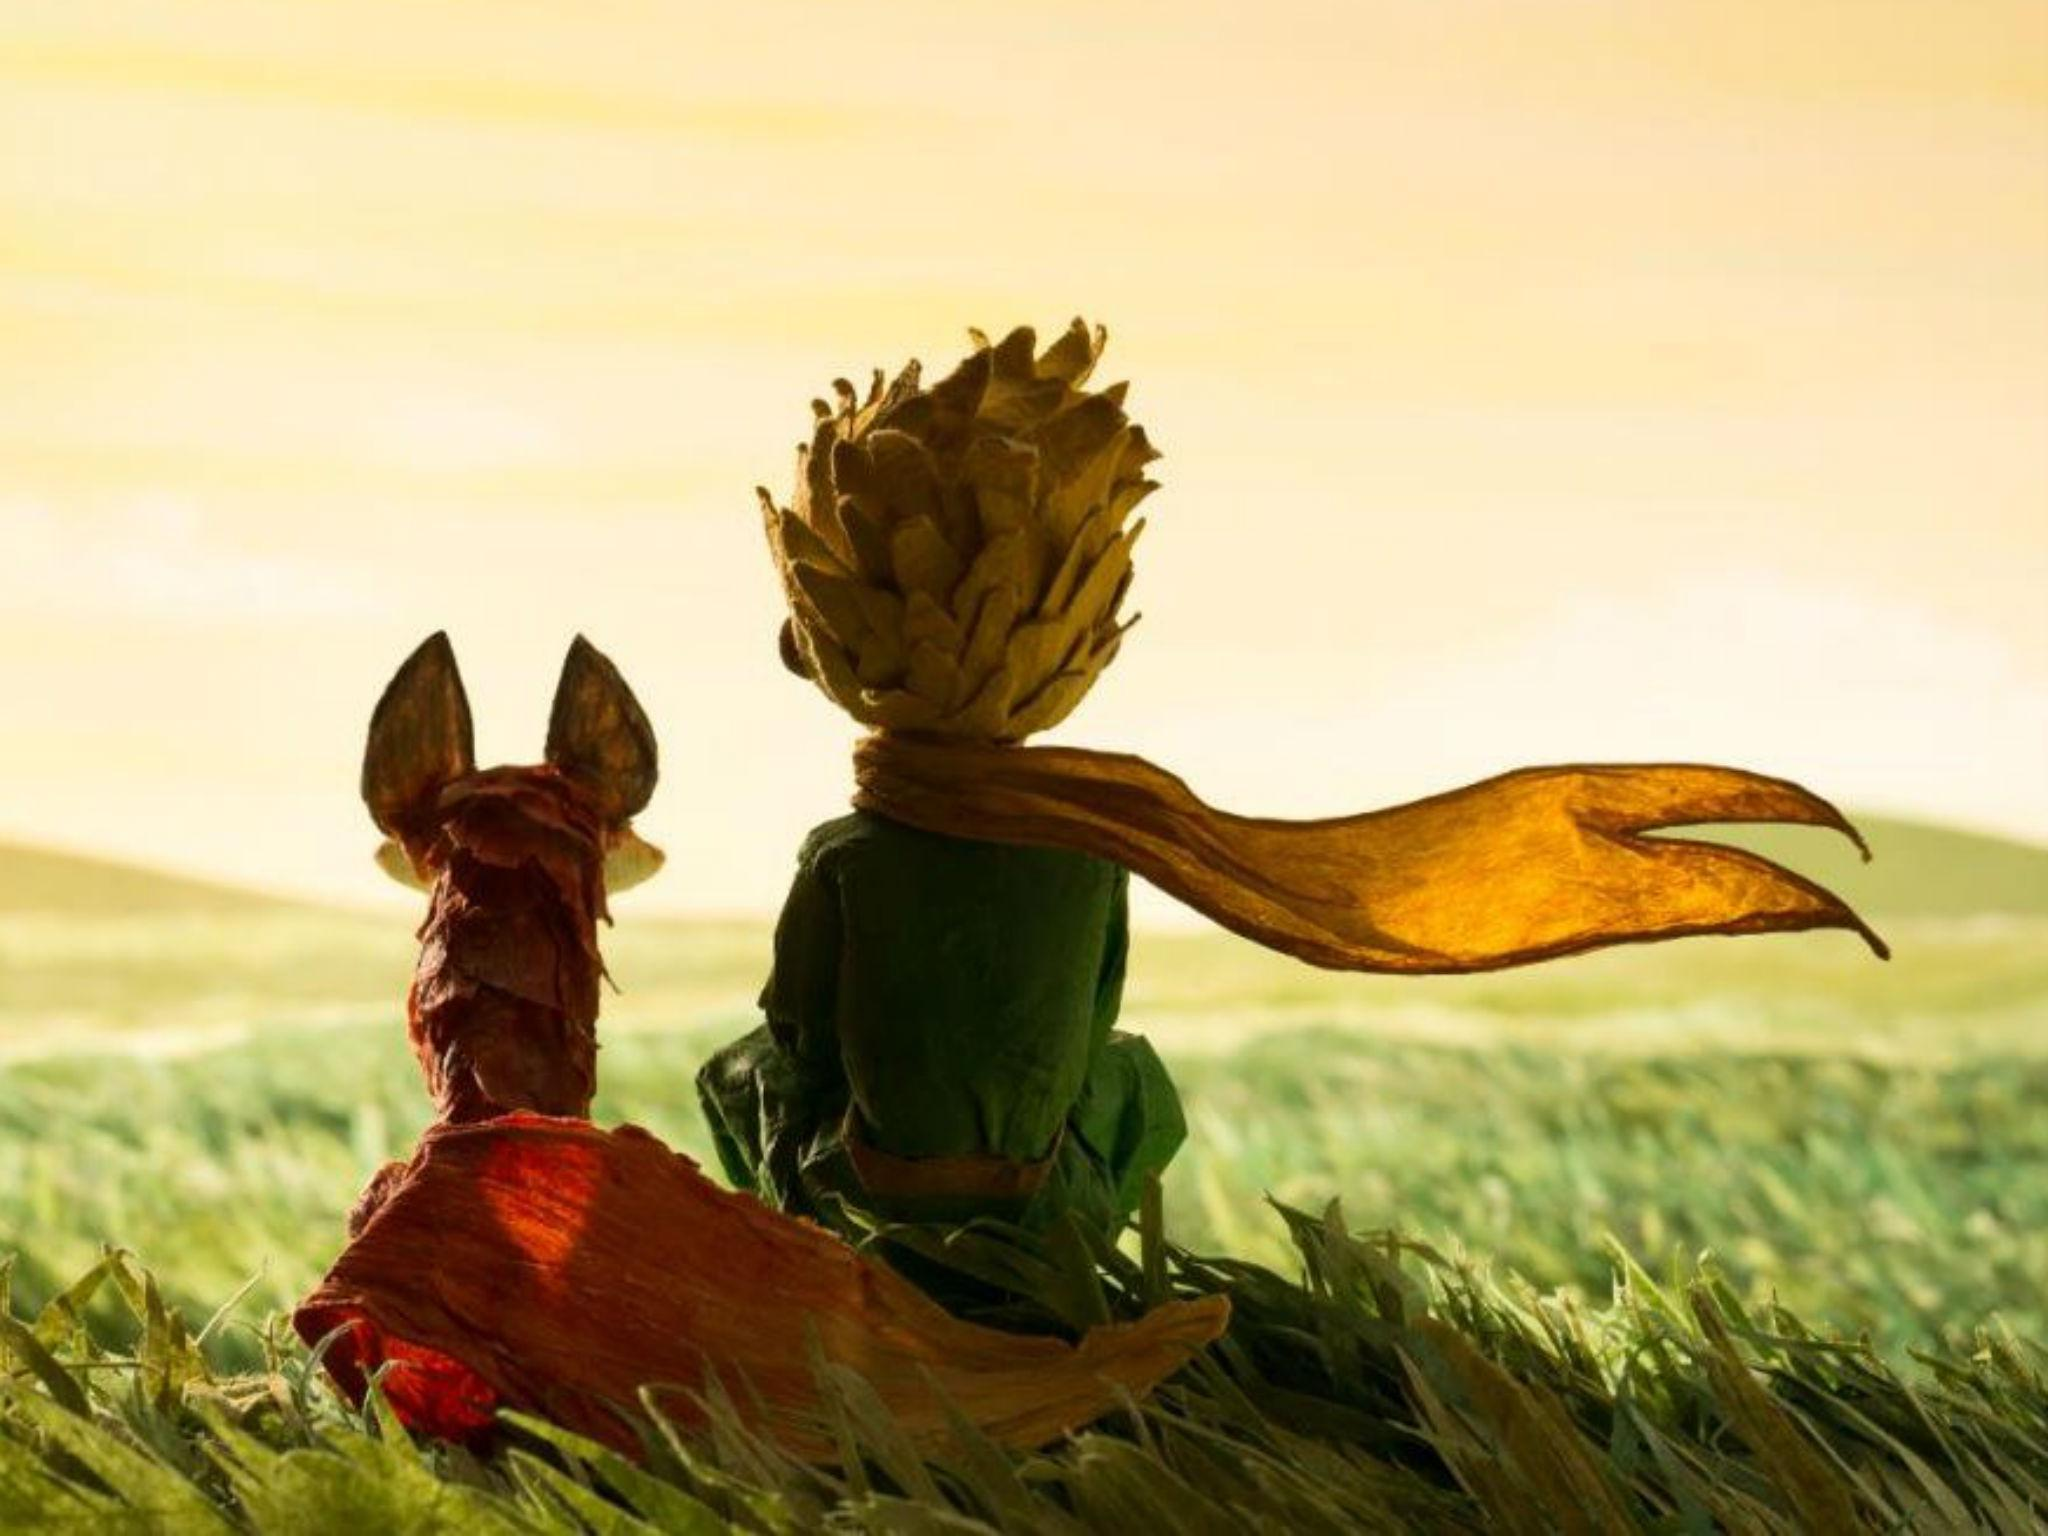 Netflix's The Little Prince is the animated film we all need in 2016